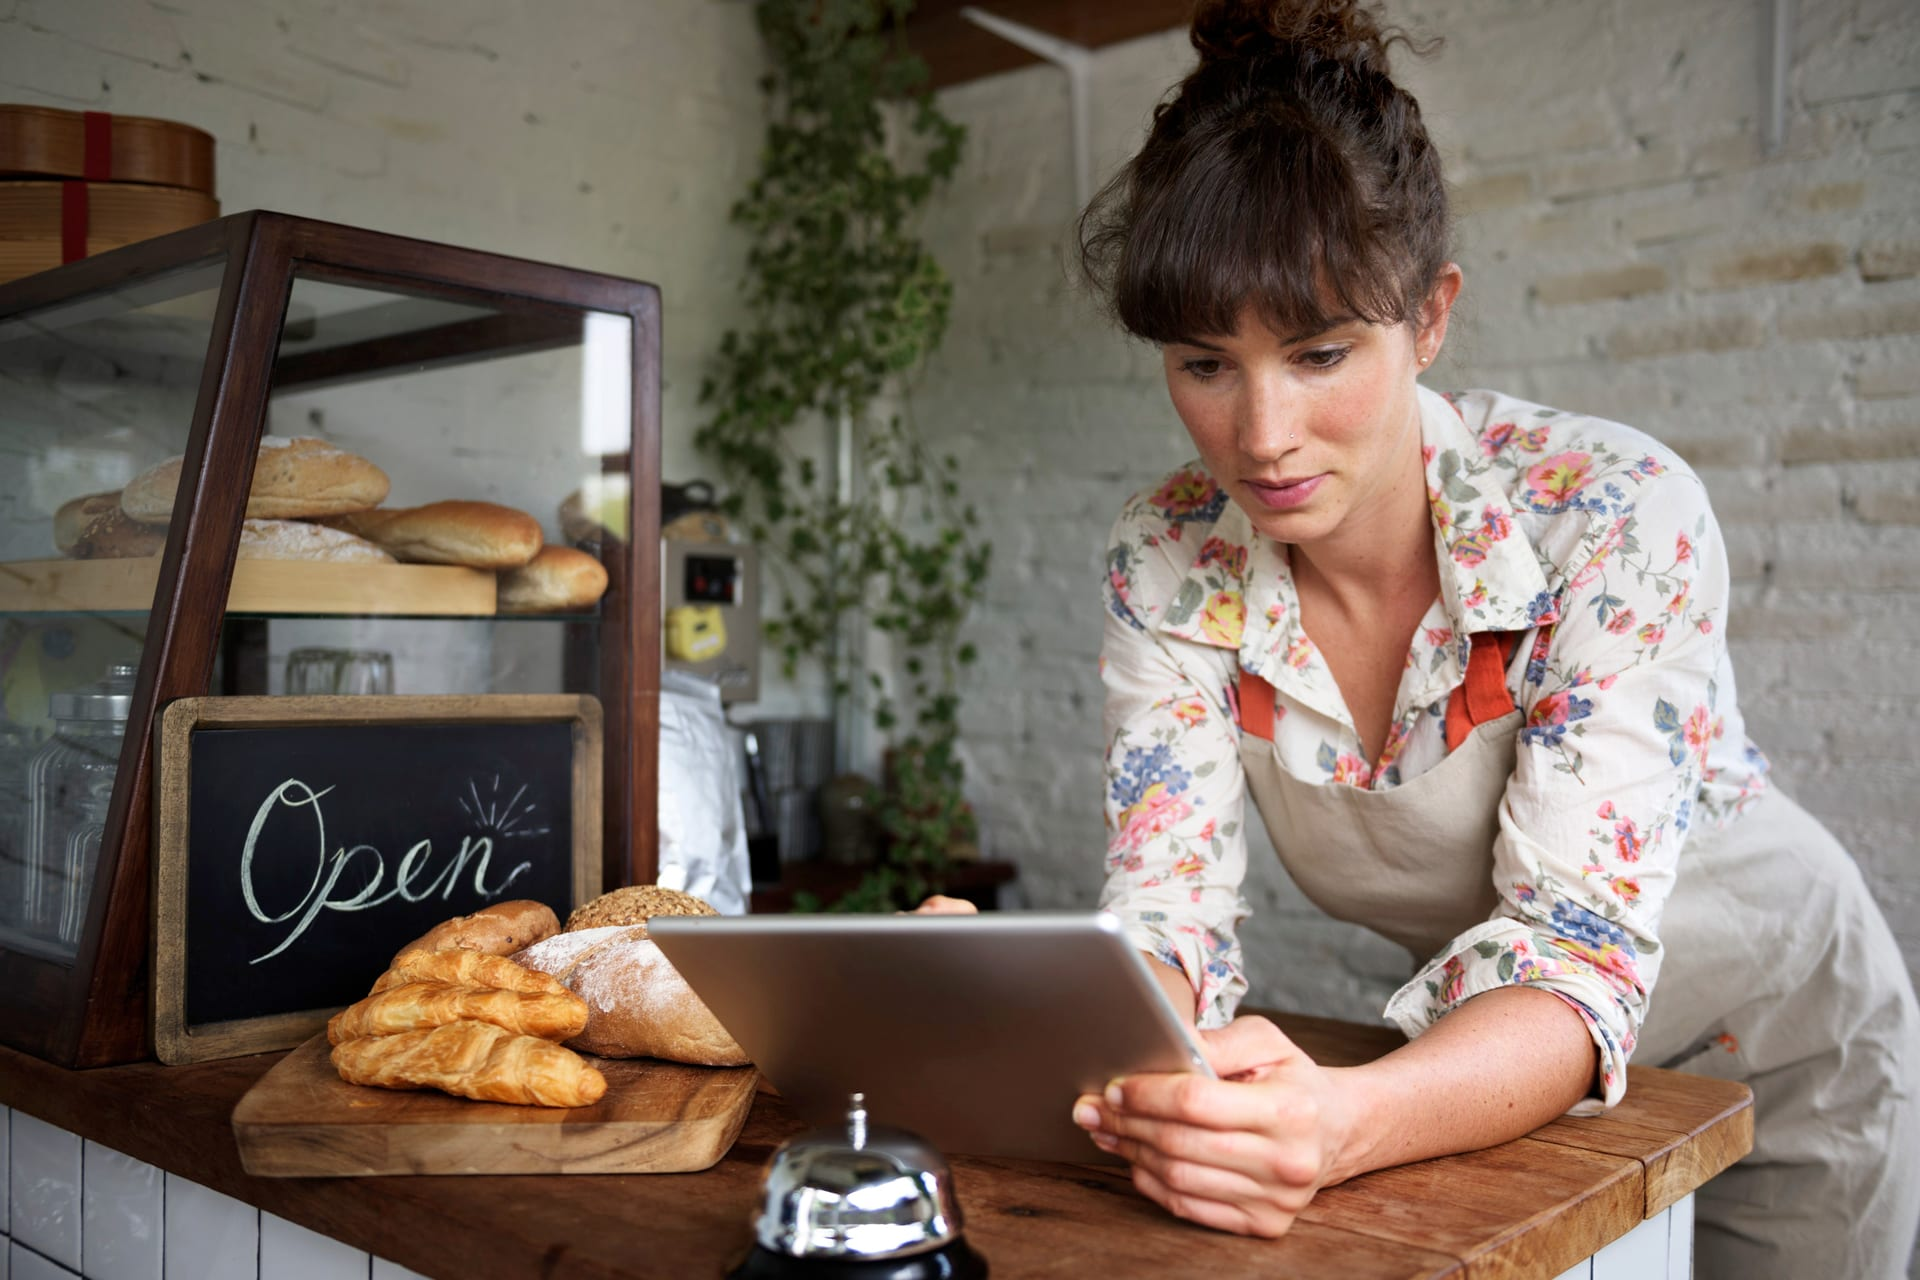 Any savvy small business owner should embrace digital marketing.